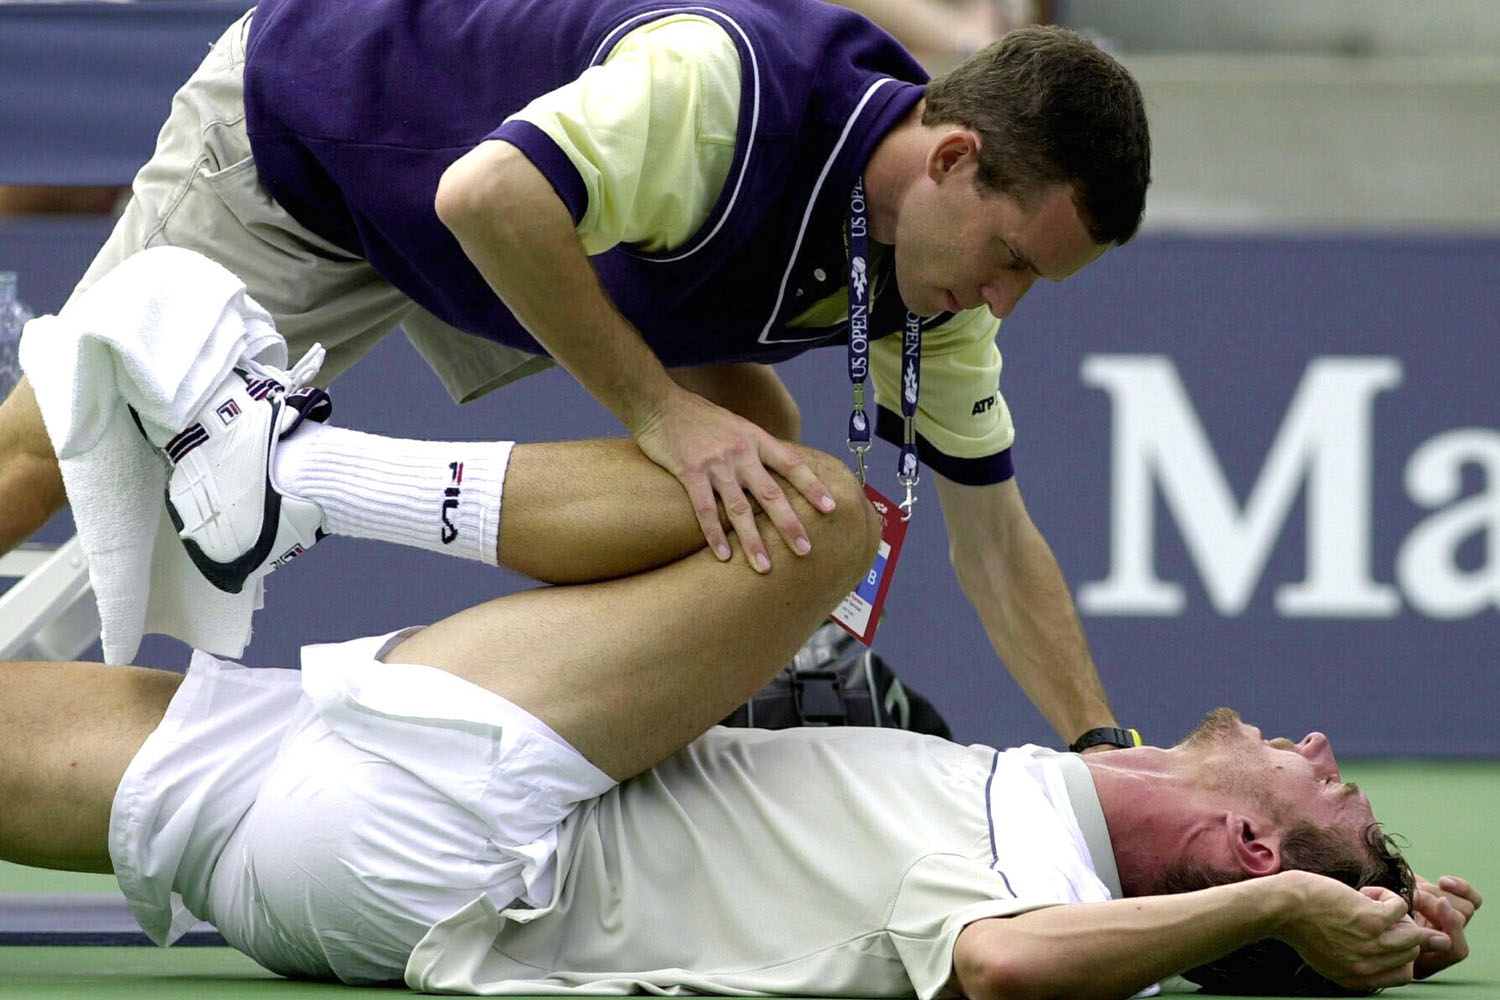 Julien Boutter has his leg stretched by a trainer during his match against number nine seeded Lleyton Hewitt at the US Open Tennis Tournament in Flushing Meadows, NY in 2000.